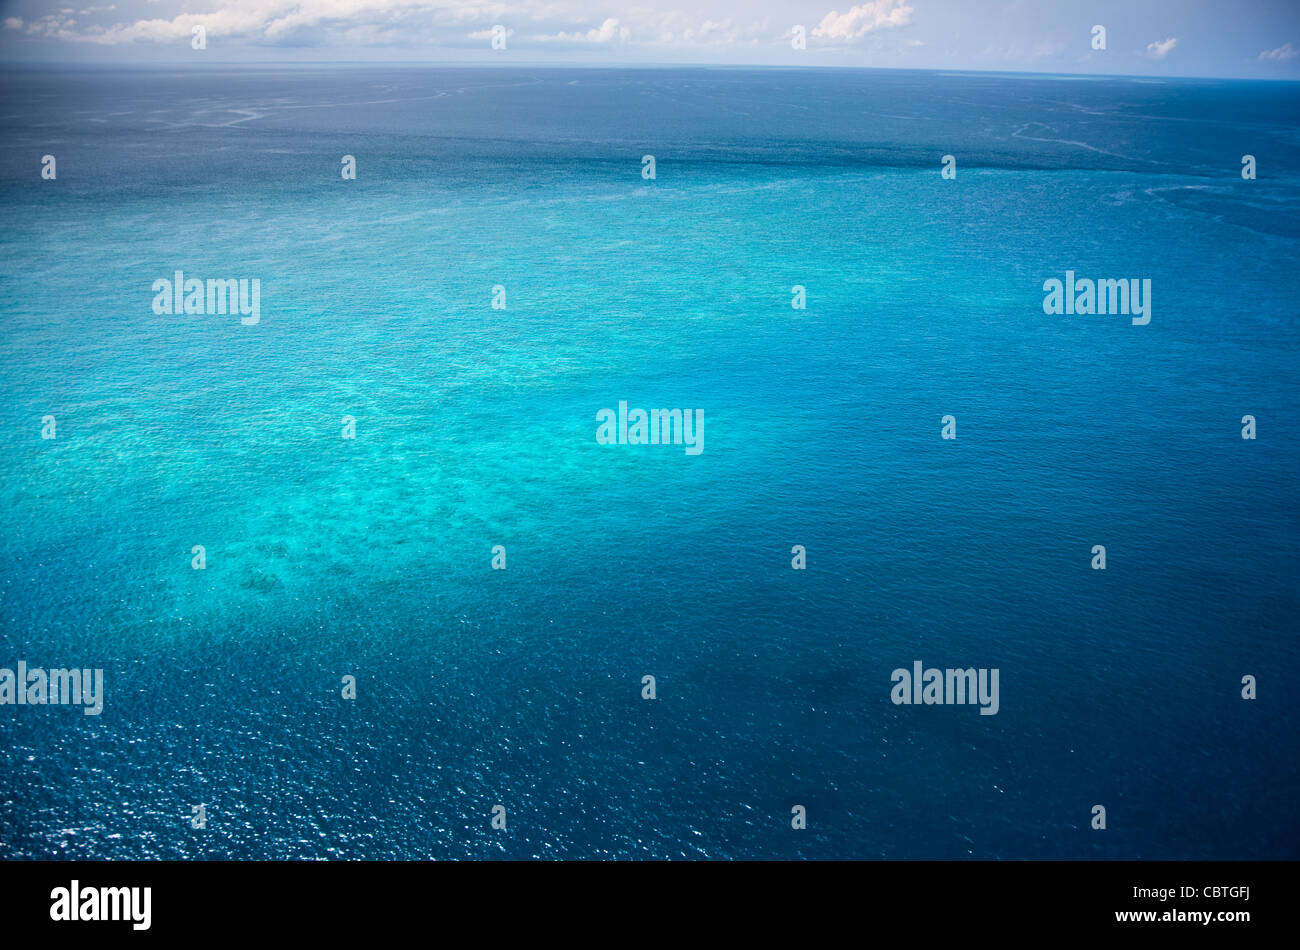 Aerial views of the spectacular Great Barrier Reef near the Whitsunday Islands in Queensland, Australia. Stock Photo